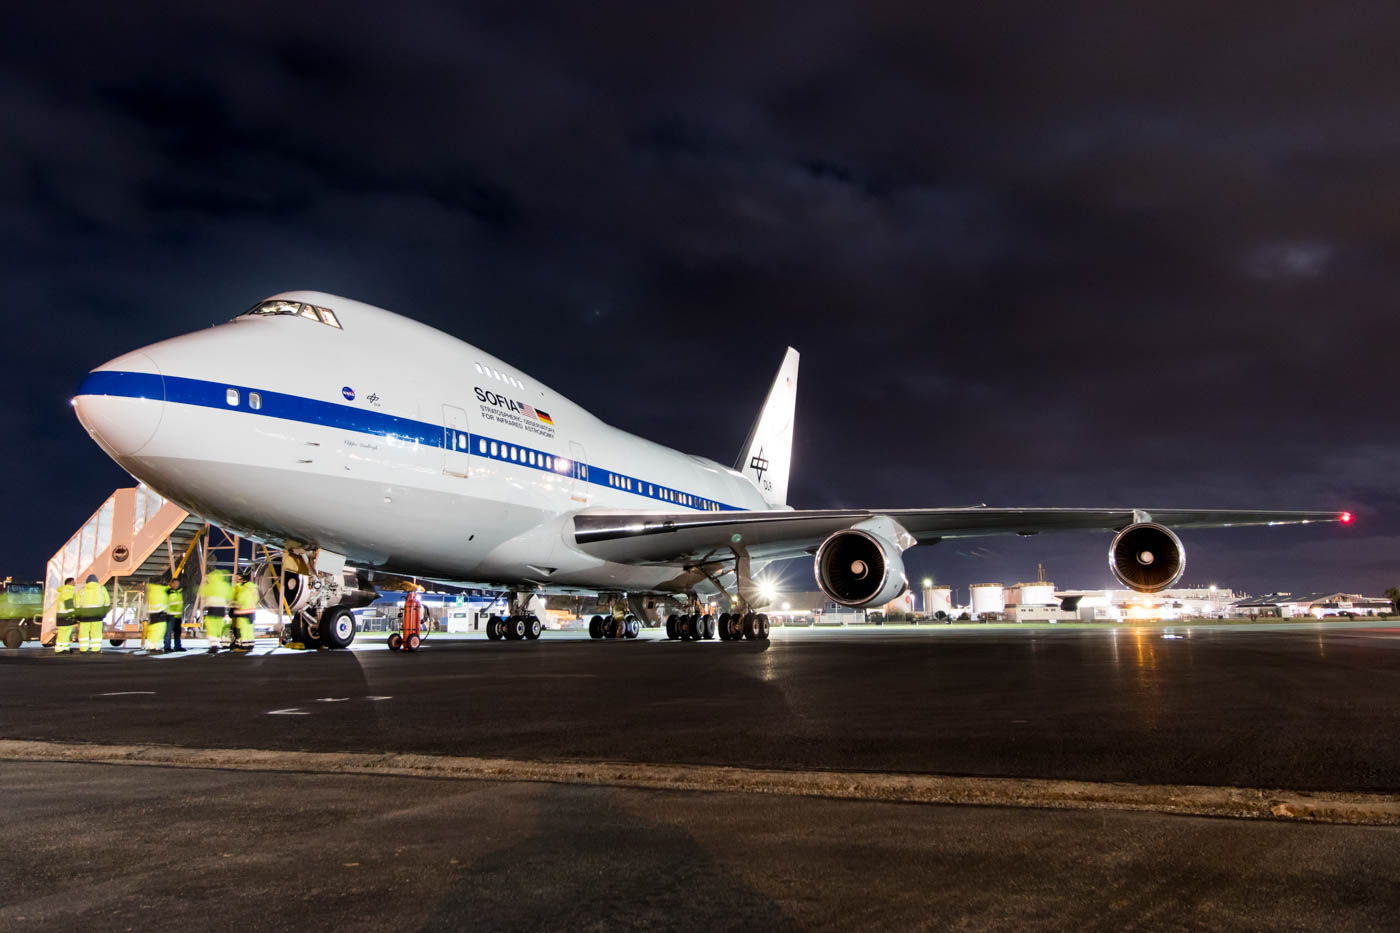 NASA Boeing 747SP SOFIA N747NA at Christchurch Airport